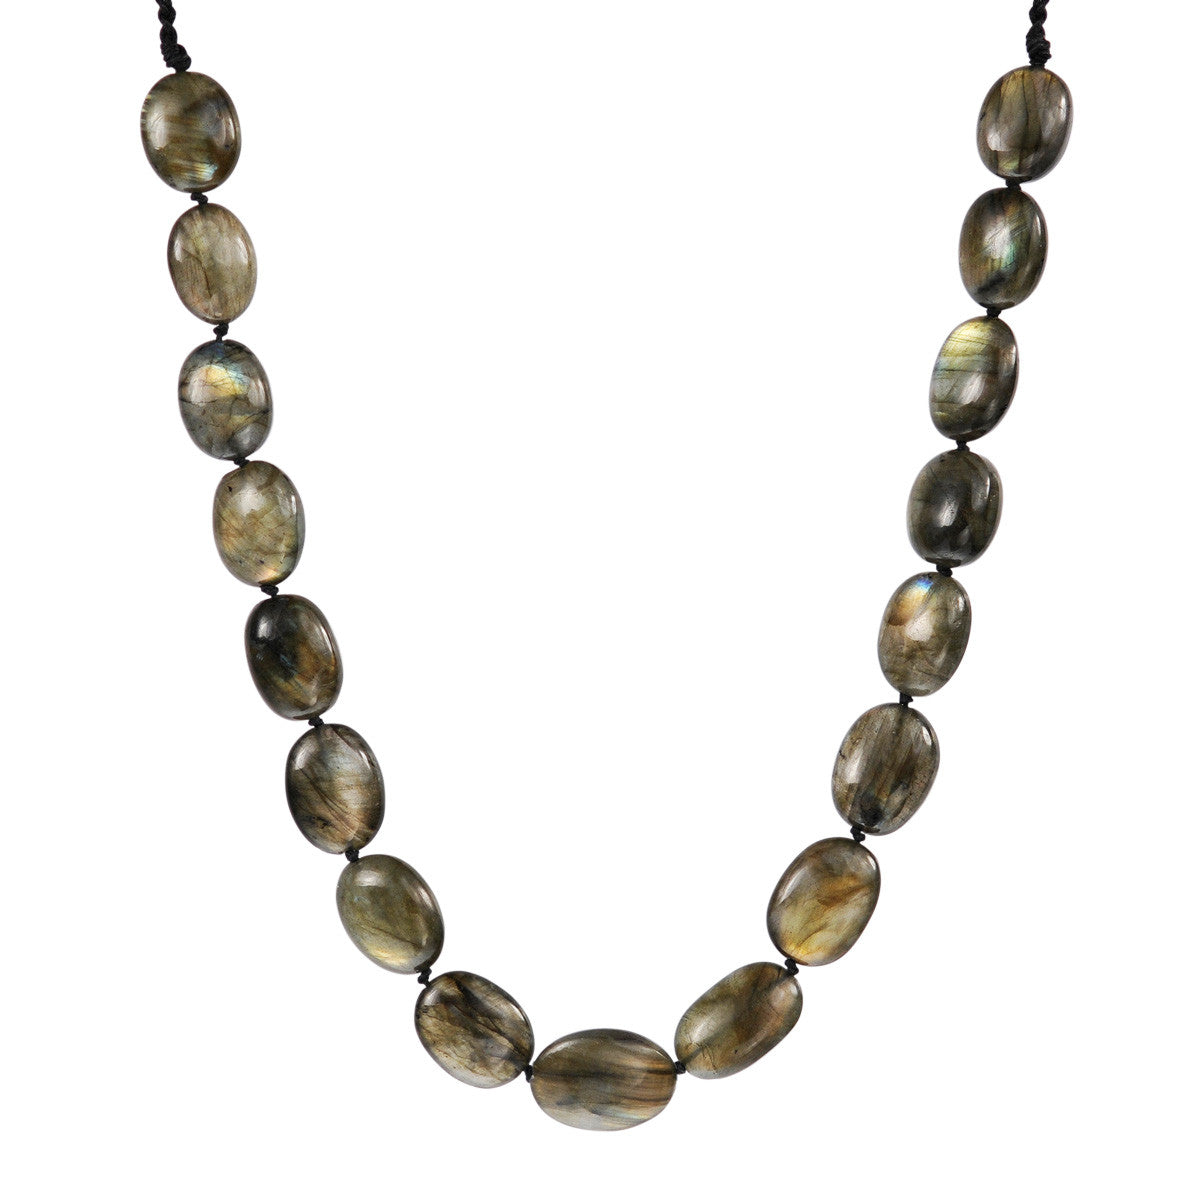 Sterling Silver Knotted Labradorite Necklace on Cord